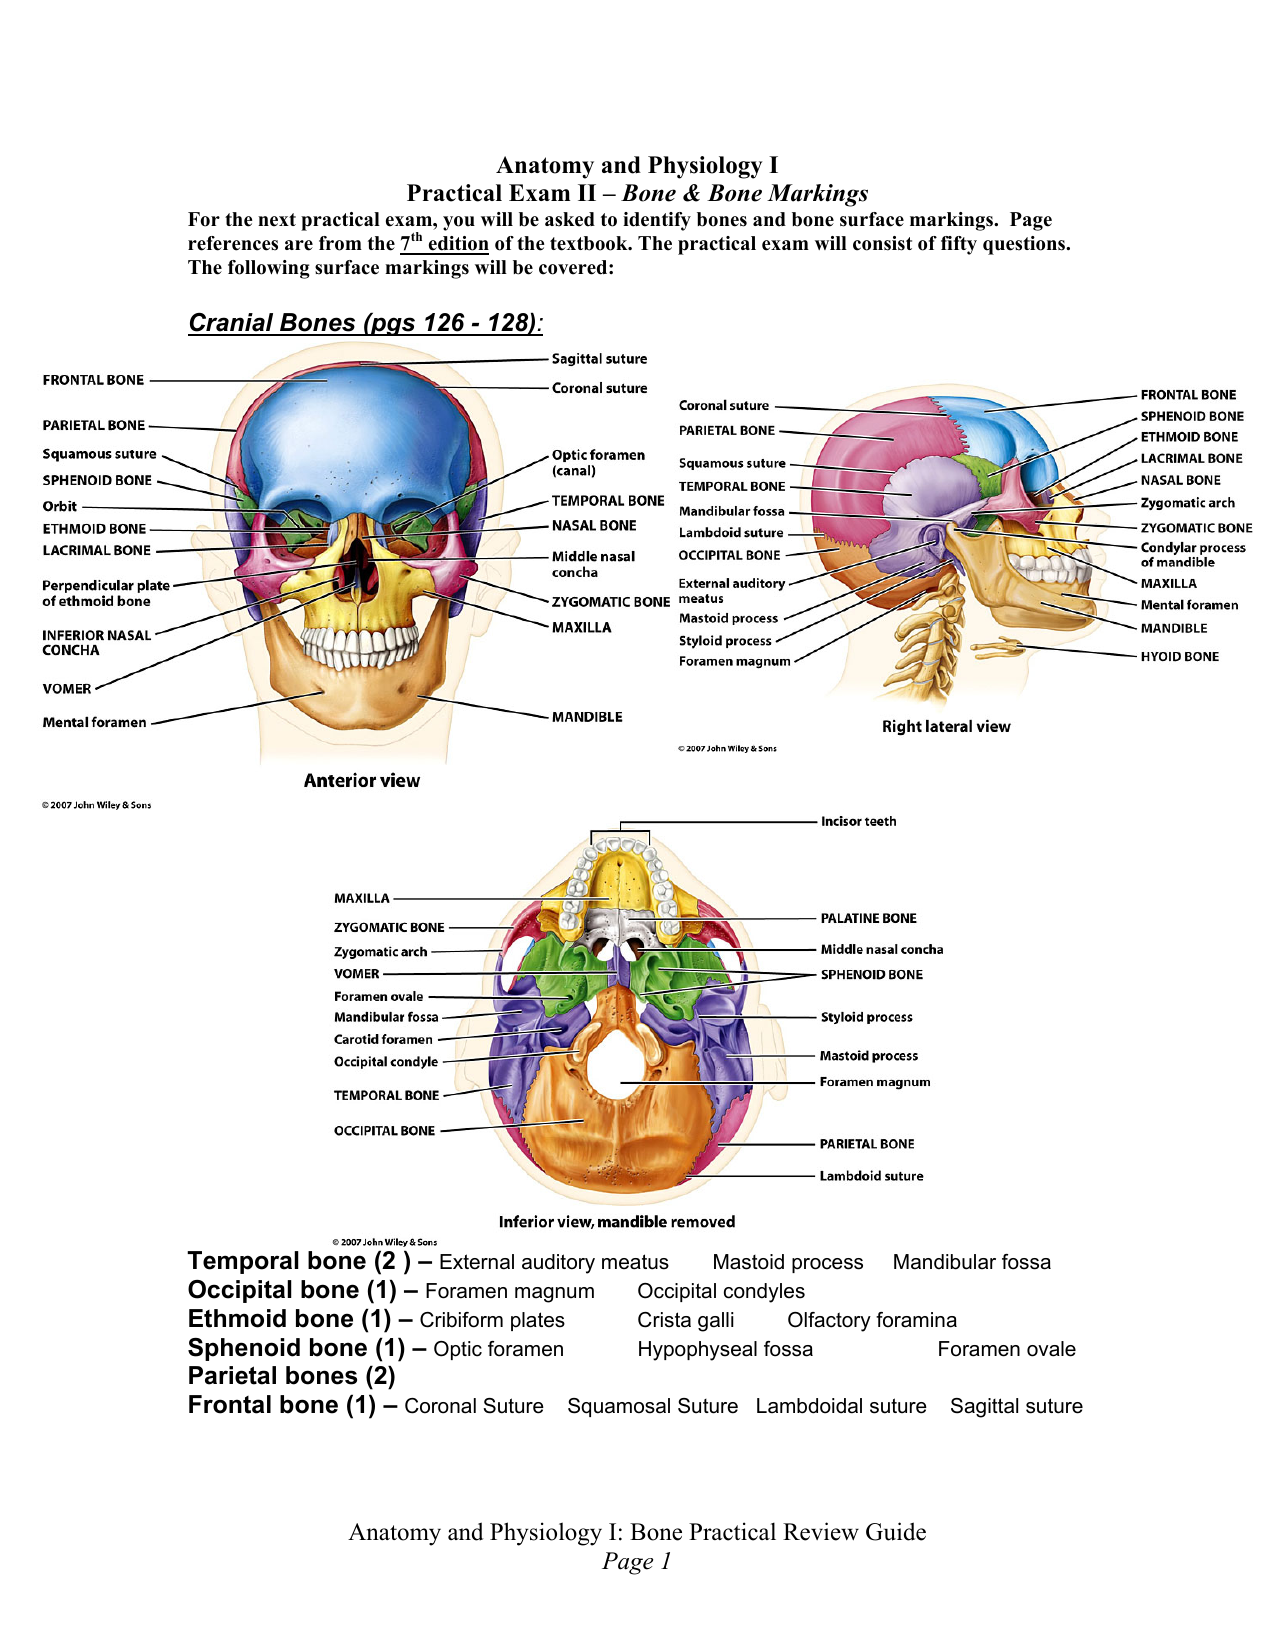 Anatomy and Physiology I: Bone Practical Review Guide Page 1